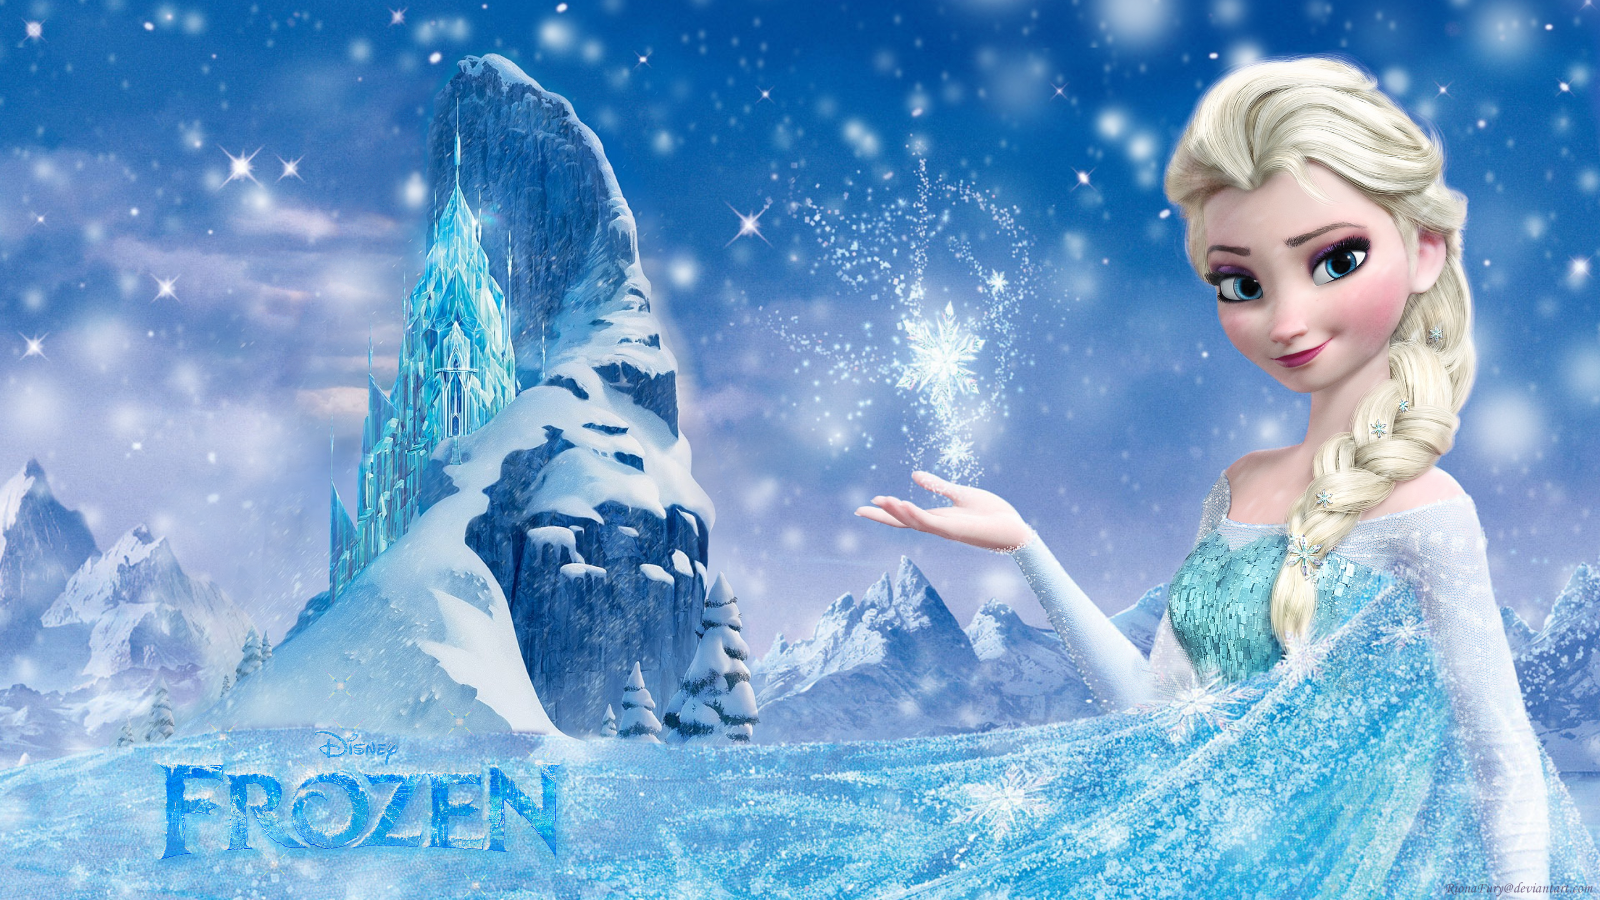 Frozen Elsa Frozen Wallpaper 37732274 Fanpop 1600x900